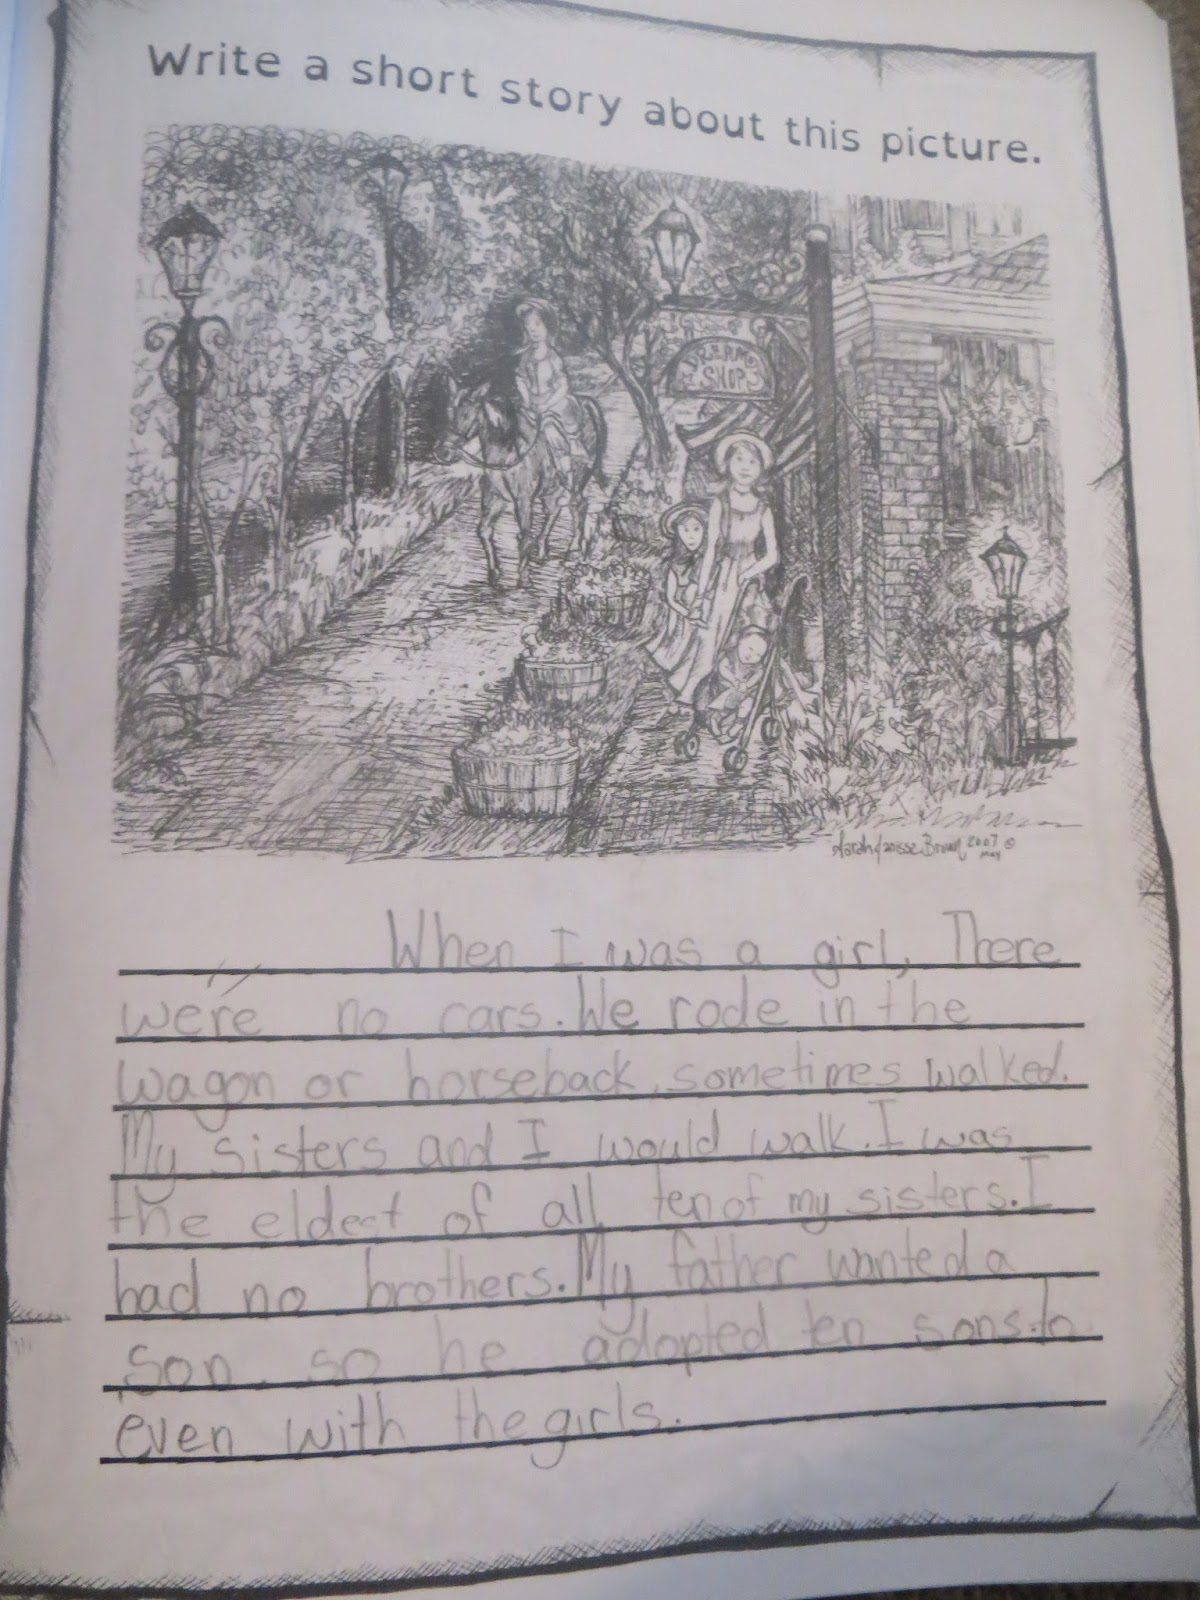 My full heart review of do it yourself homeschool journal reading time mikaela chooses 4 of her books to read each book for 15 minutes totaling 1 hour daily she sometimes reads longer solutioingenieria Choice Image